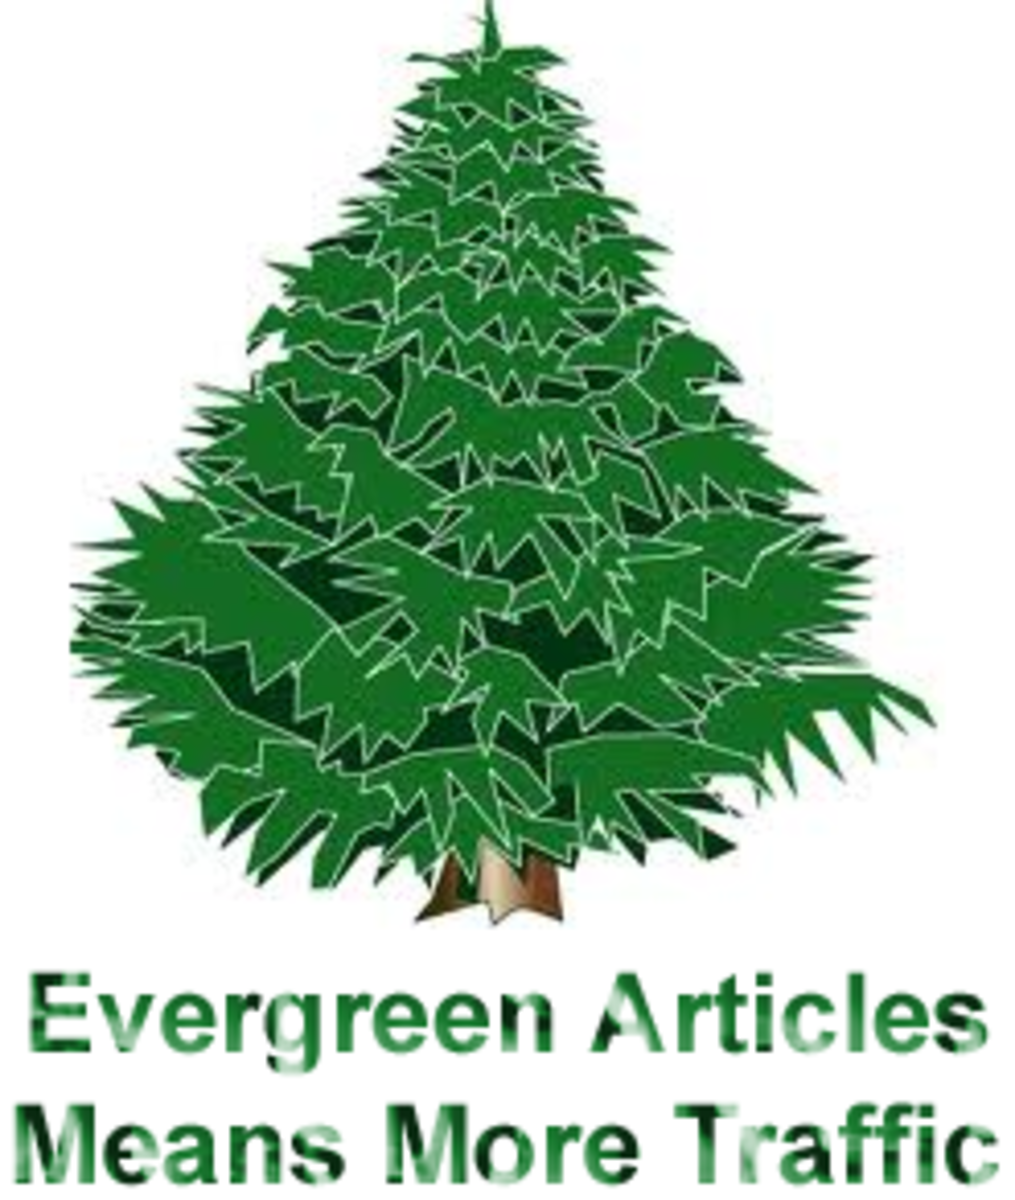 How to Increase and Maintain Page Views Traffic using Evergreen Articles